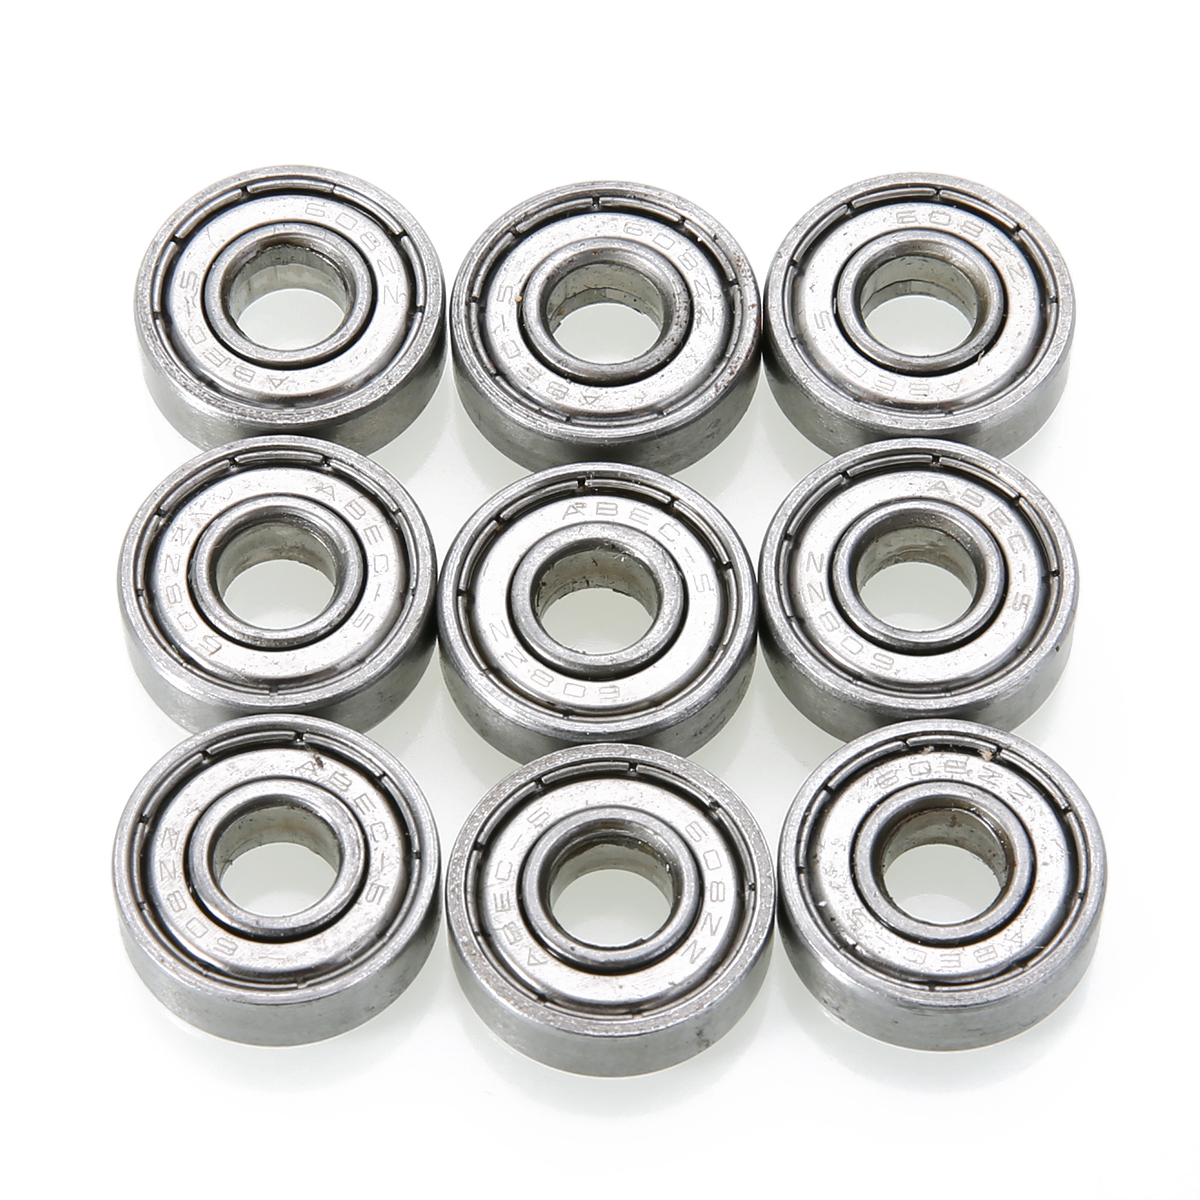 10pcs 608zz Deep Groove Bearing Steel Ball Bearings With Grease For Skateboard Roller Blade Scooter Inline Skating Mayitr gcr15 6326 zz or 6326 2rs 130x280x58mm high precision deep groove ball bearings abec 1 p0